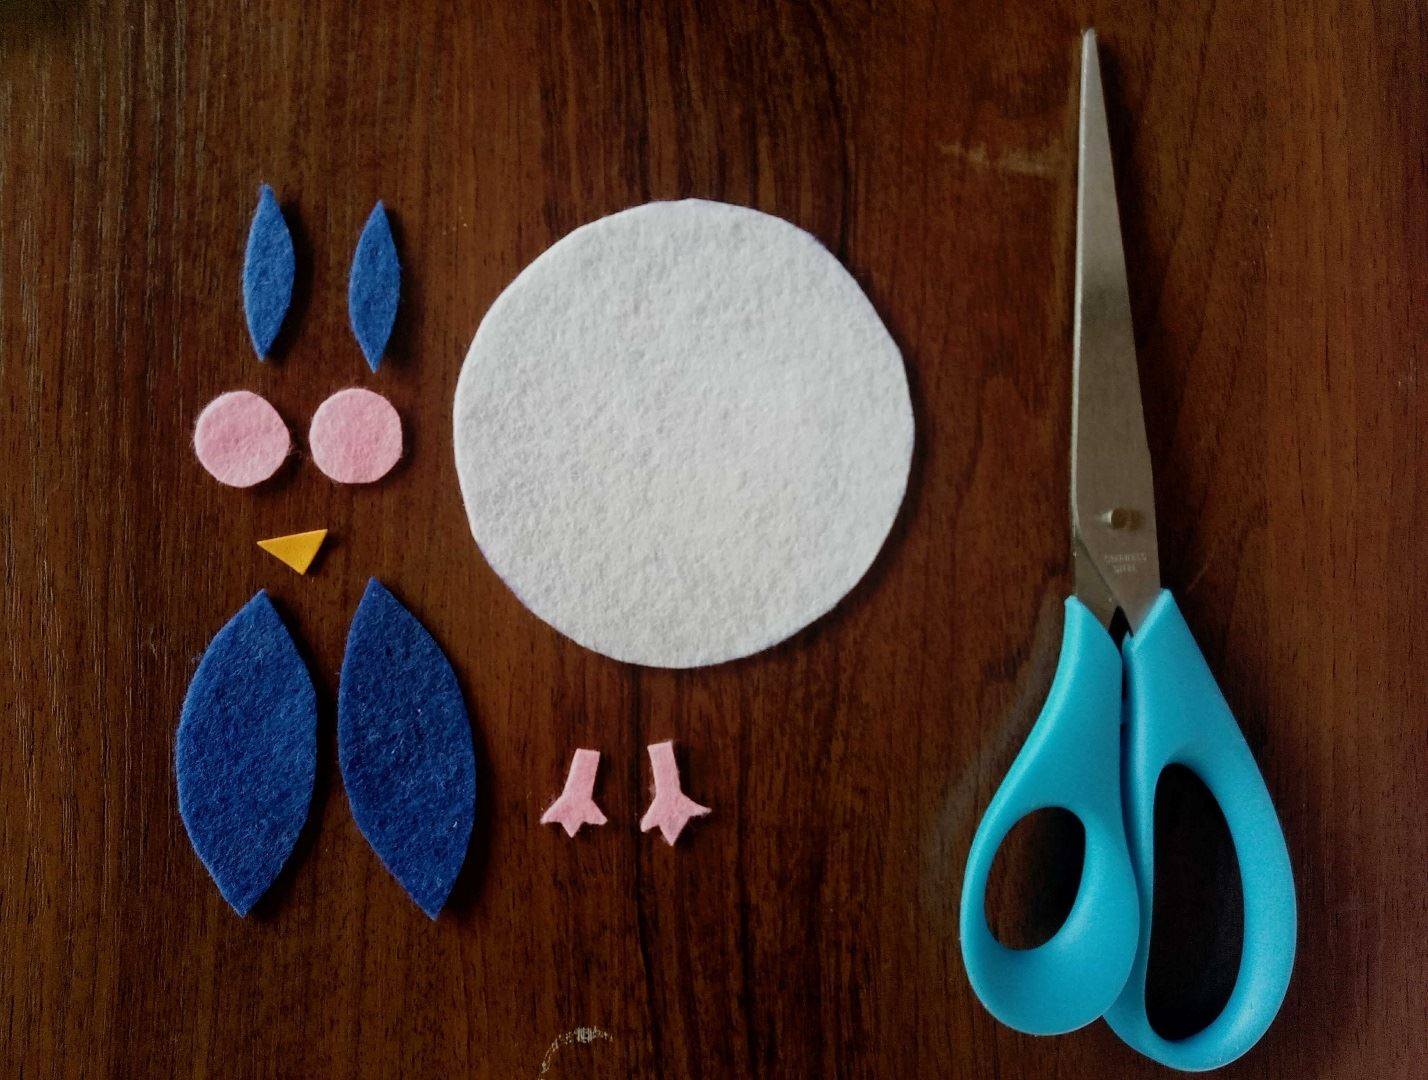 First, cut the figures out of felt, as it is shown in the picture